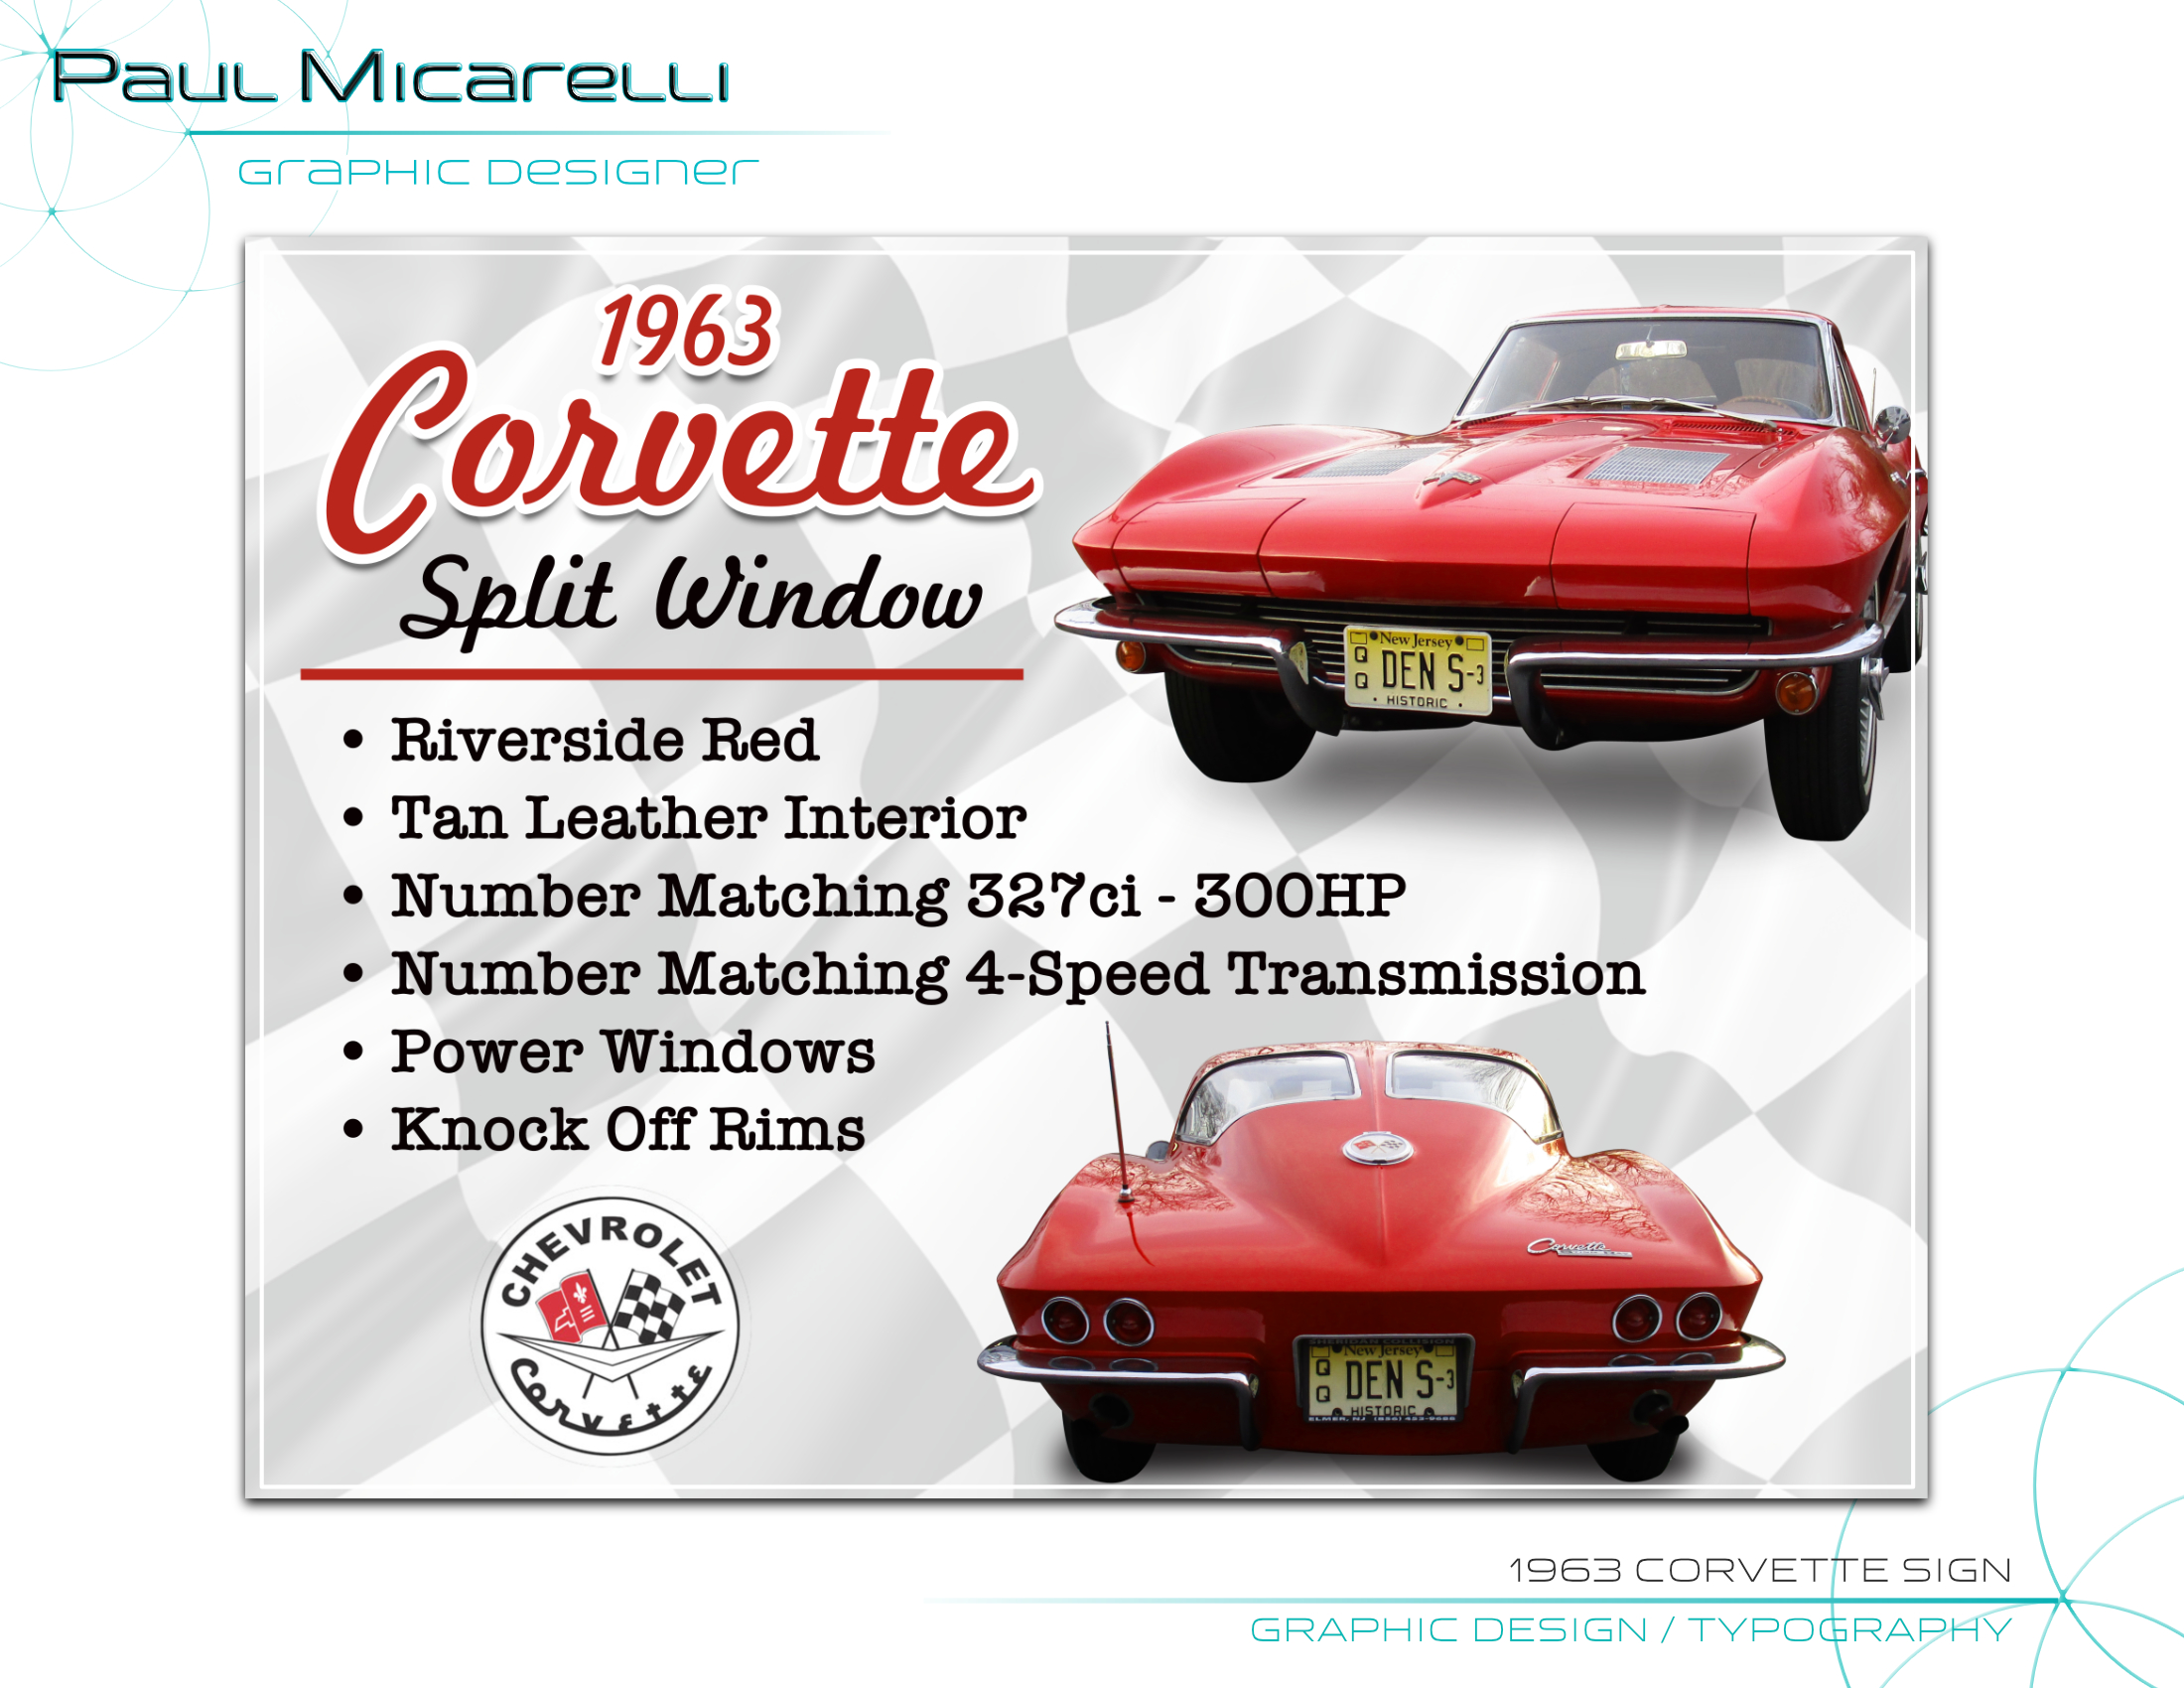 Paul-Micarelli-1963 Corvette Sign